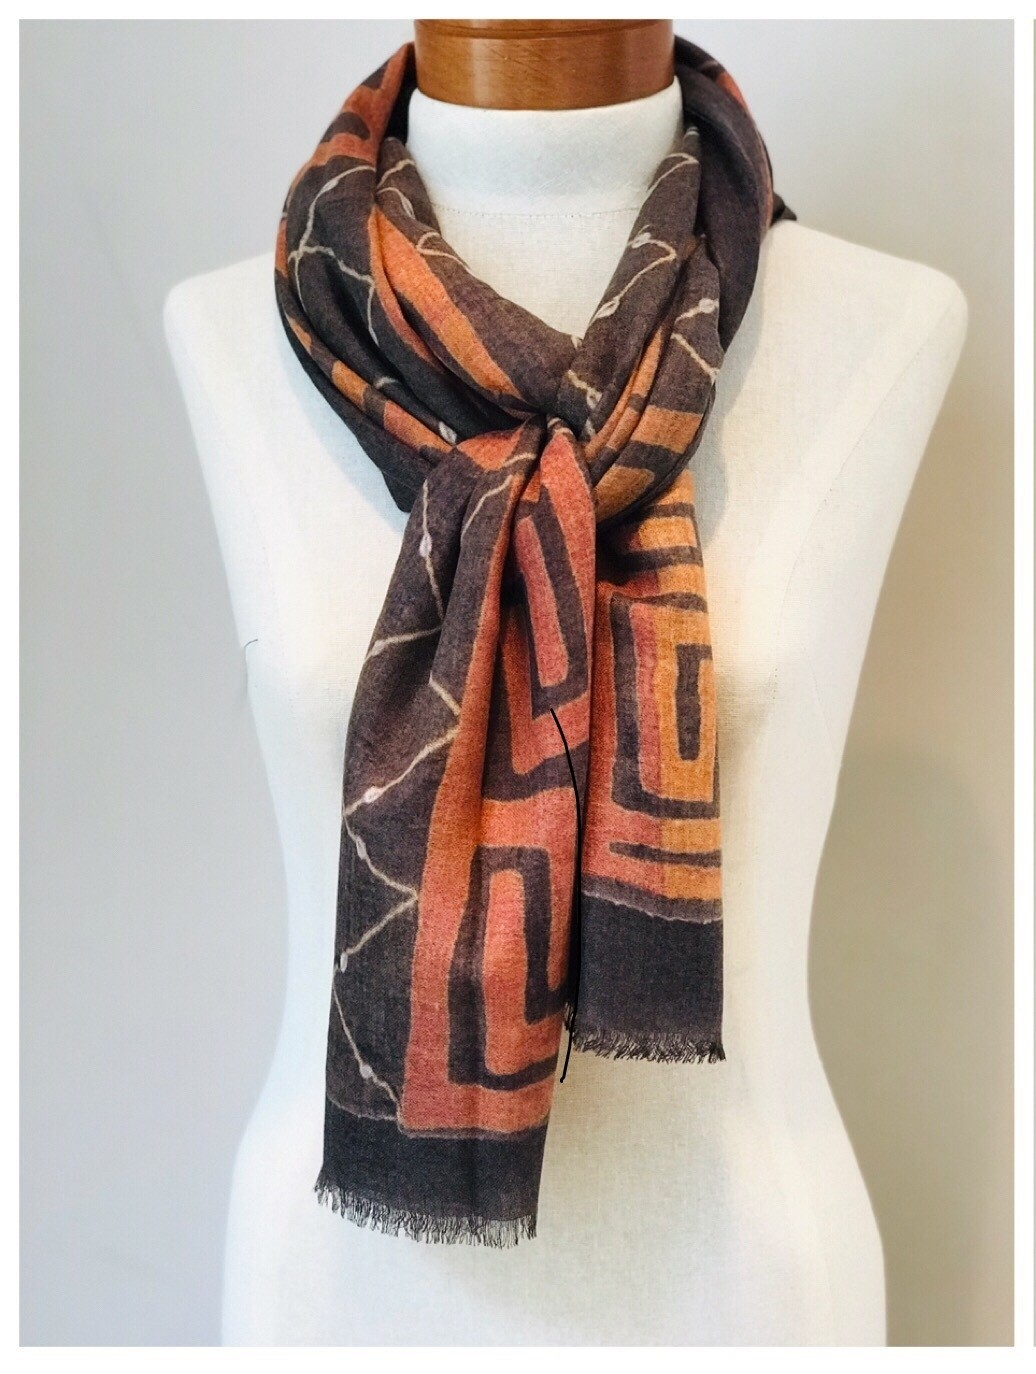 Scarf 0001 from our Kente to Kuba Exhibit